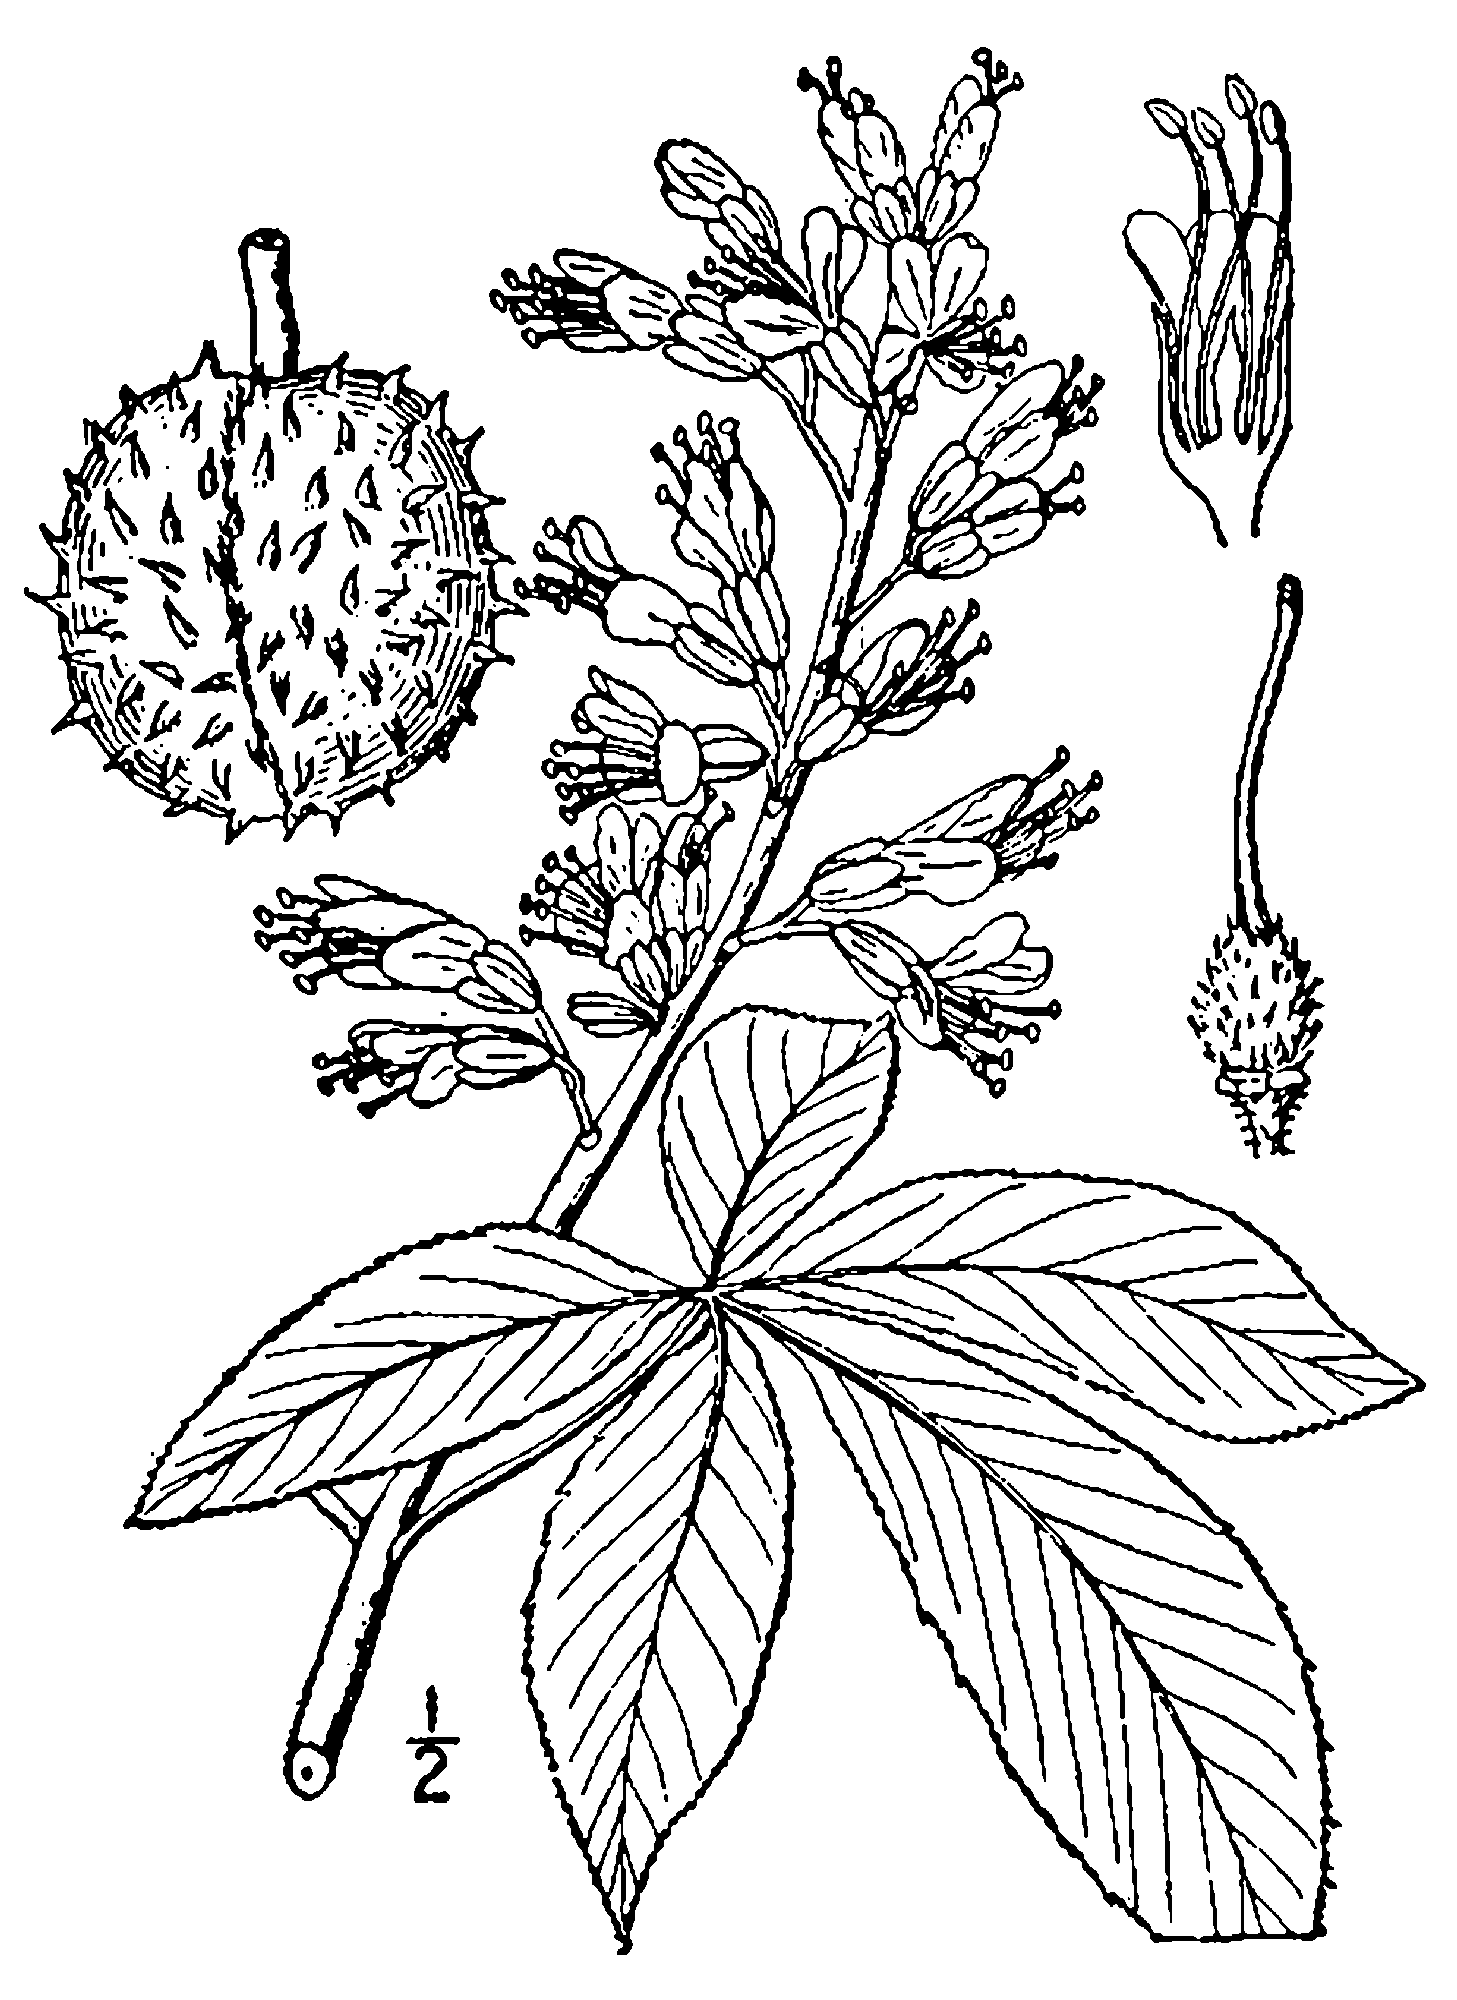 file aesculus glabra drawing png